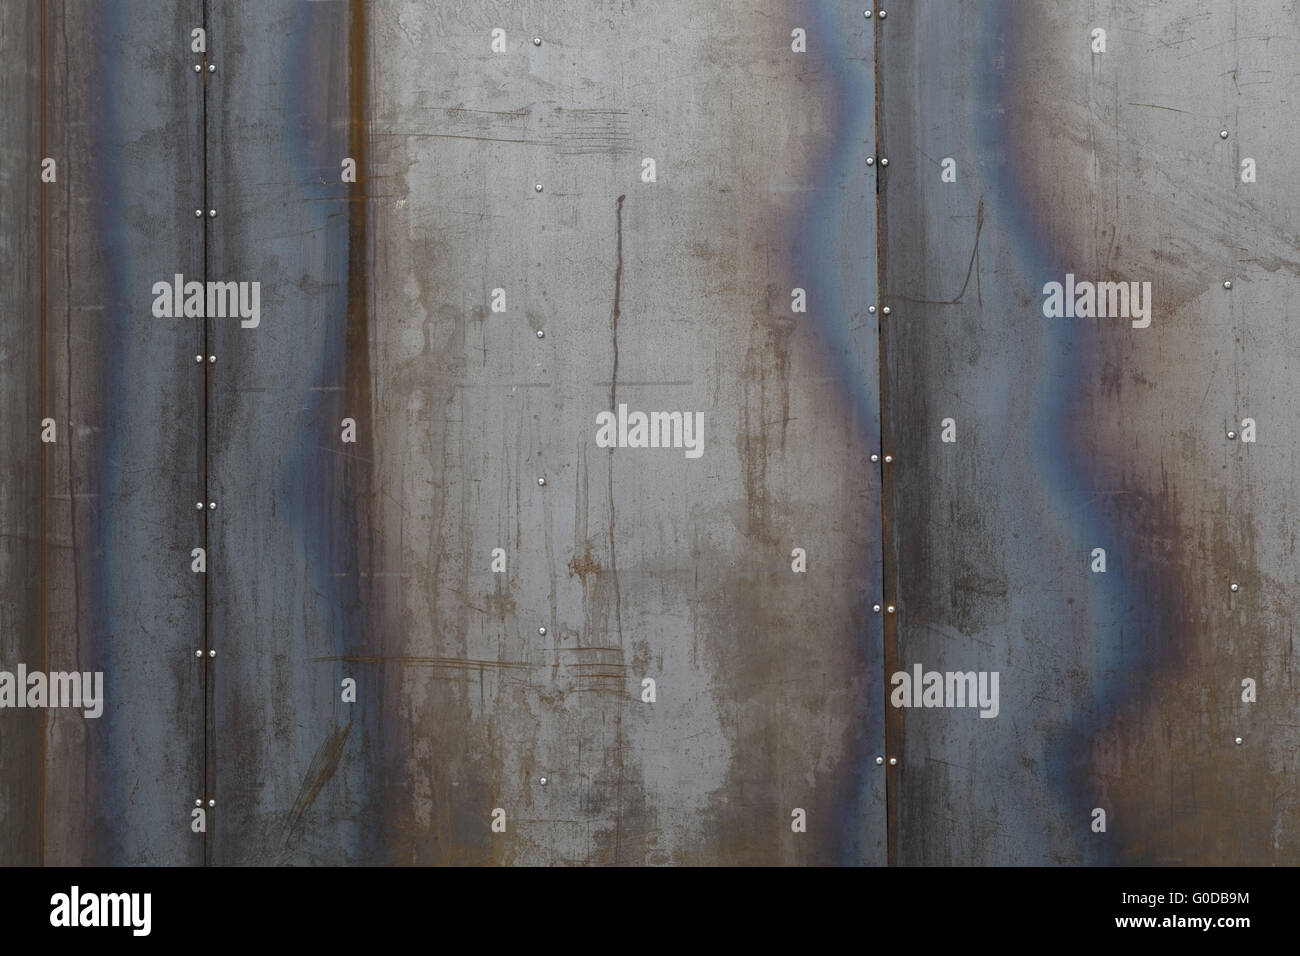 mur métal brut banque d'images, photo stock: 103556480 - alamy